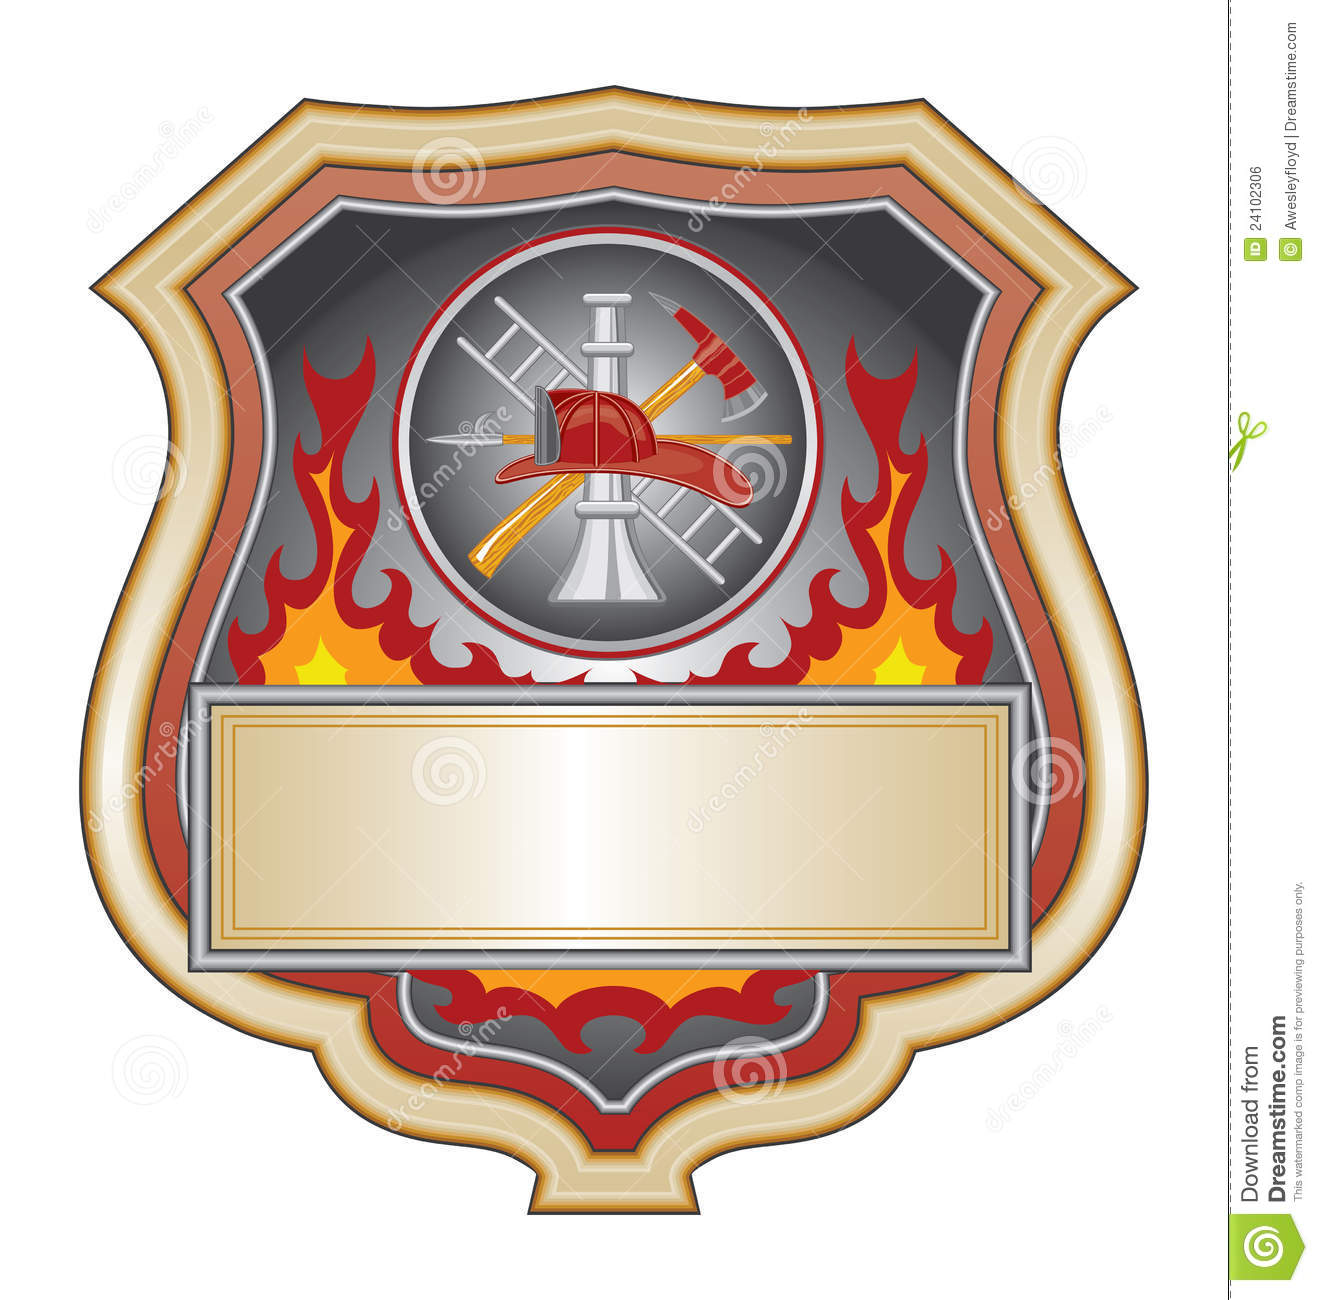 Firefighter Shield Royalty Free Stock Image - Image: 24102306